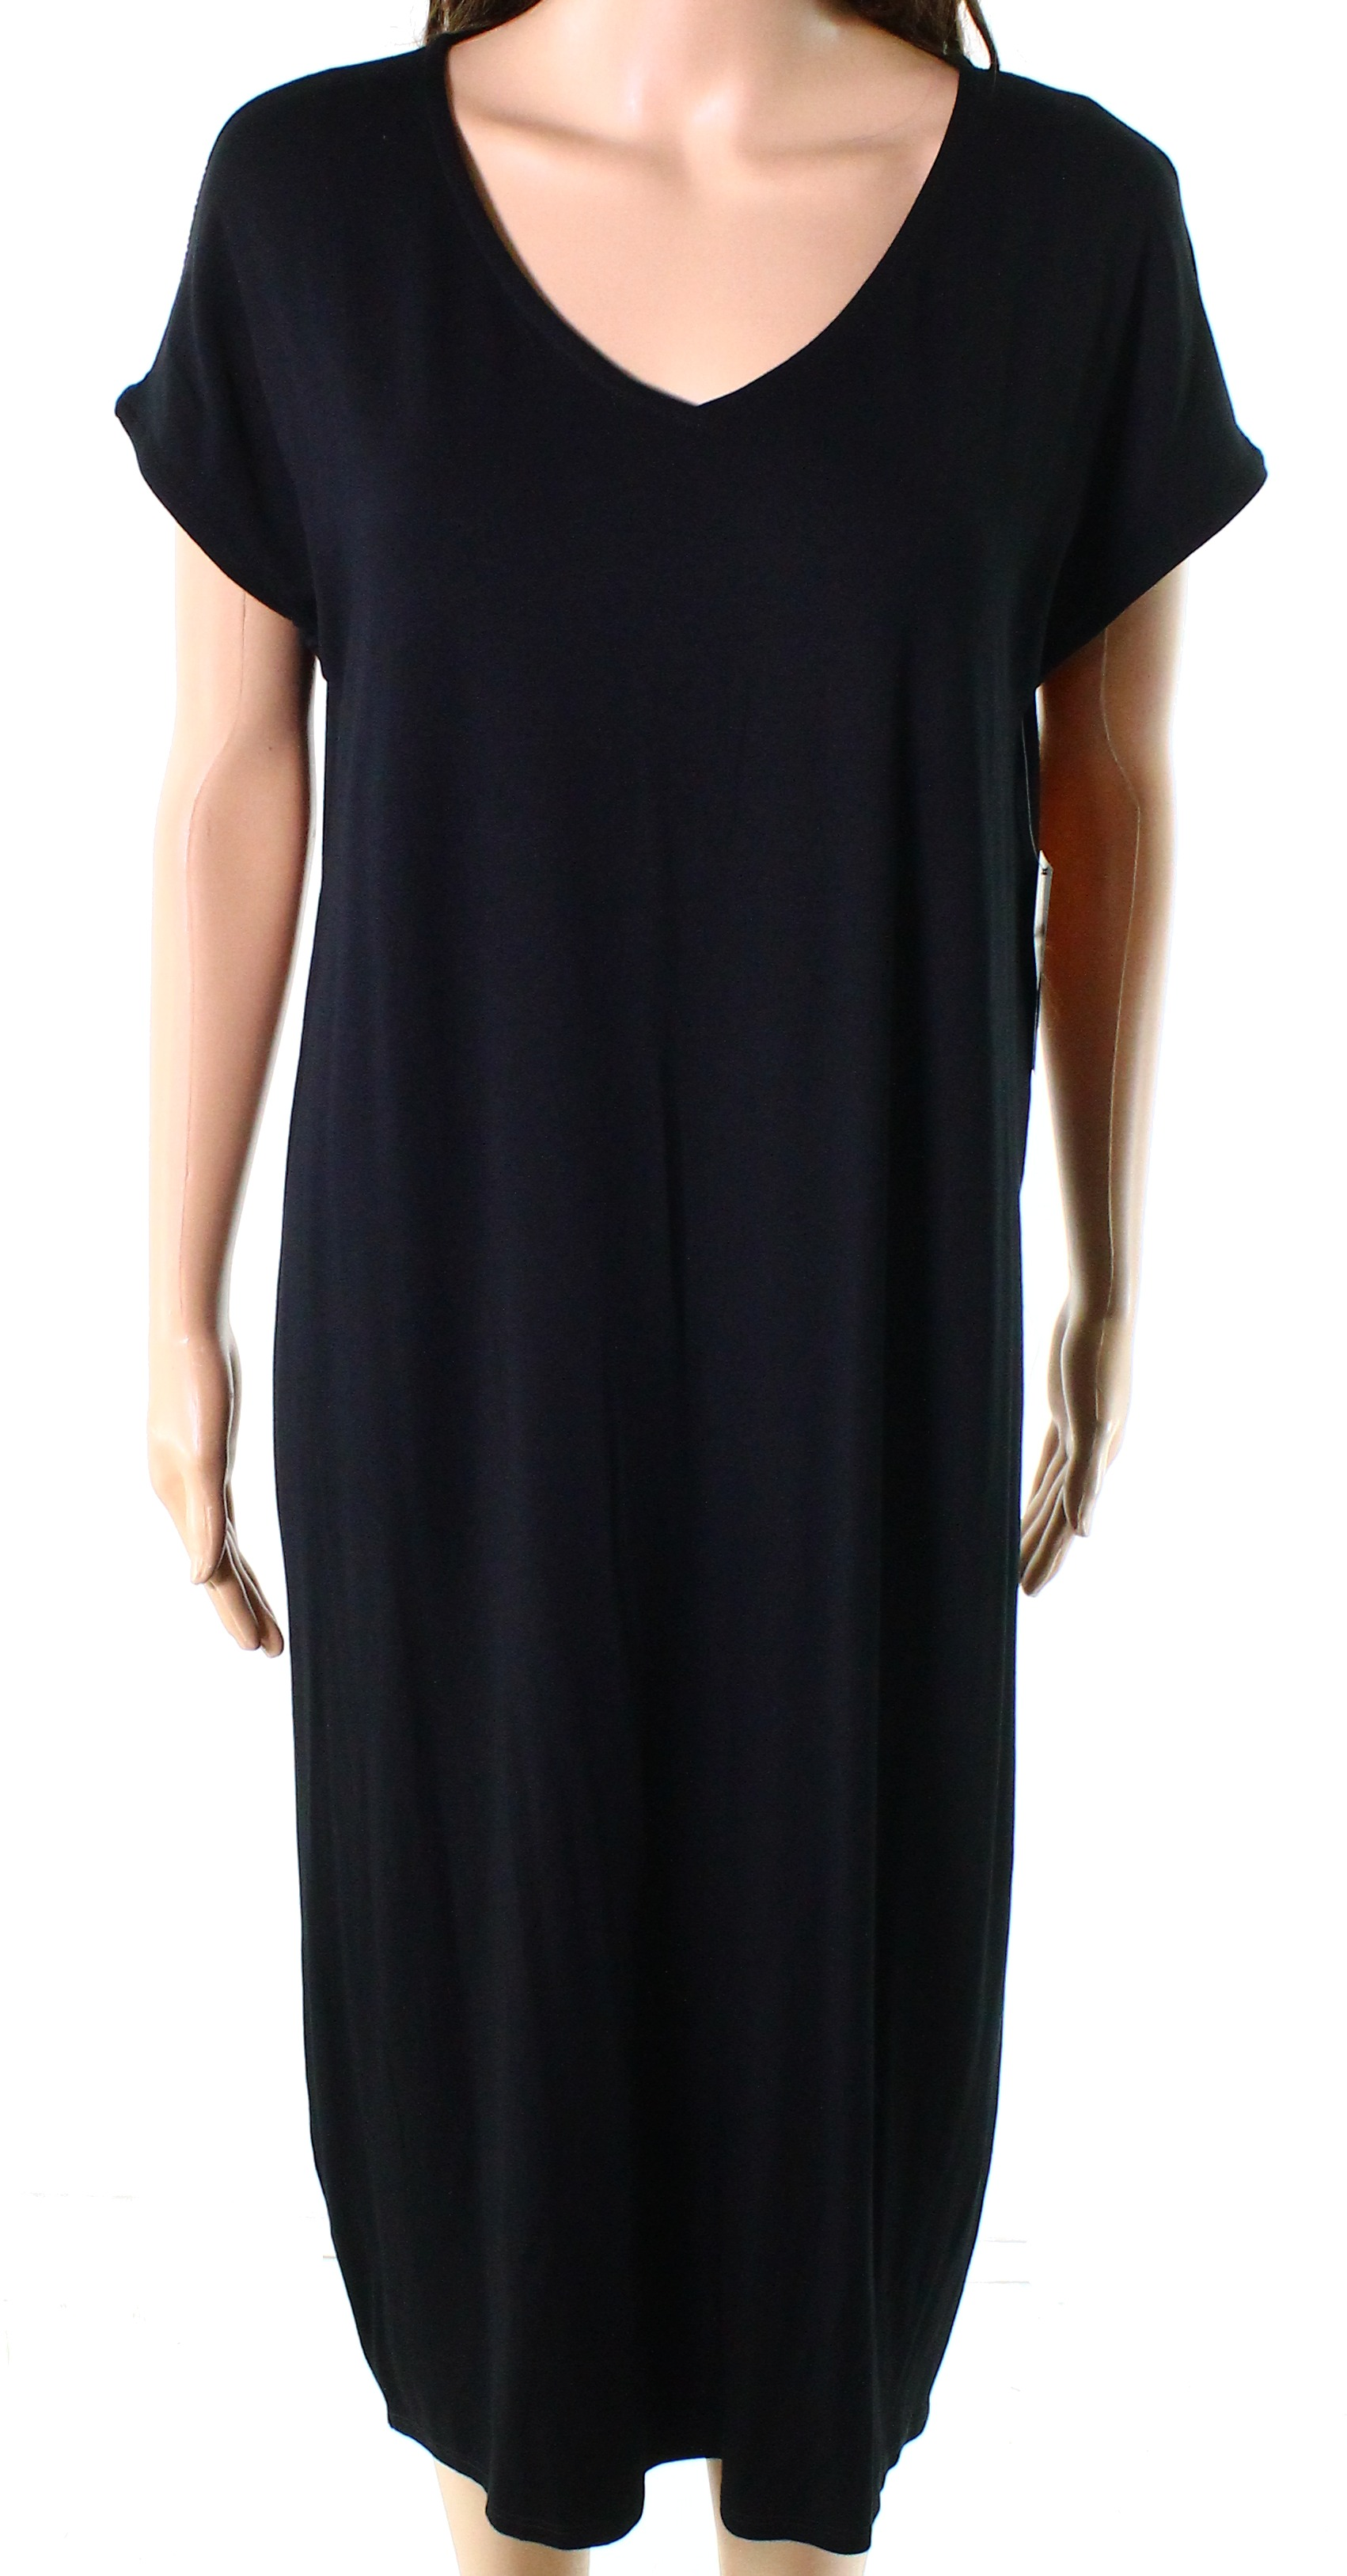 064cdae3983 We have more Eileen Fisher in Size PL - Click Here Click to see all Womens  Dresses in Size PL